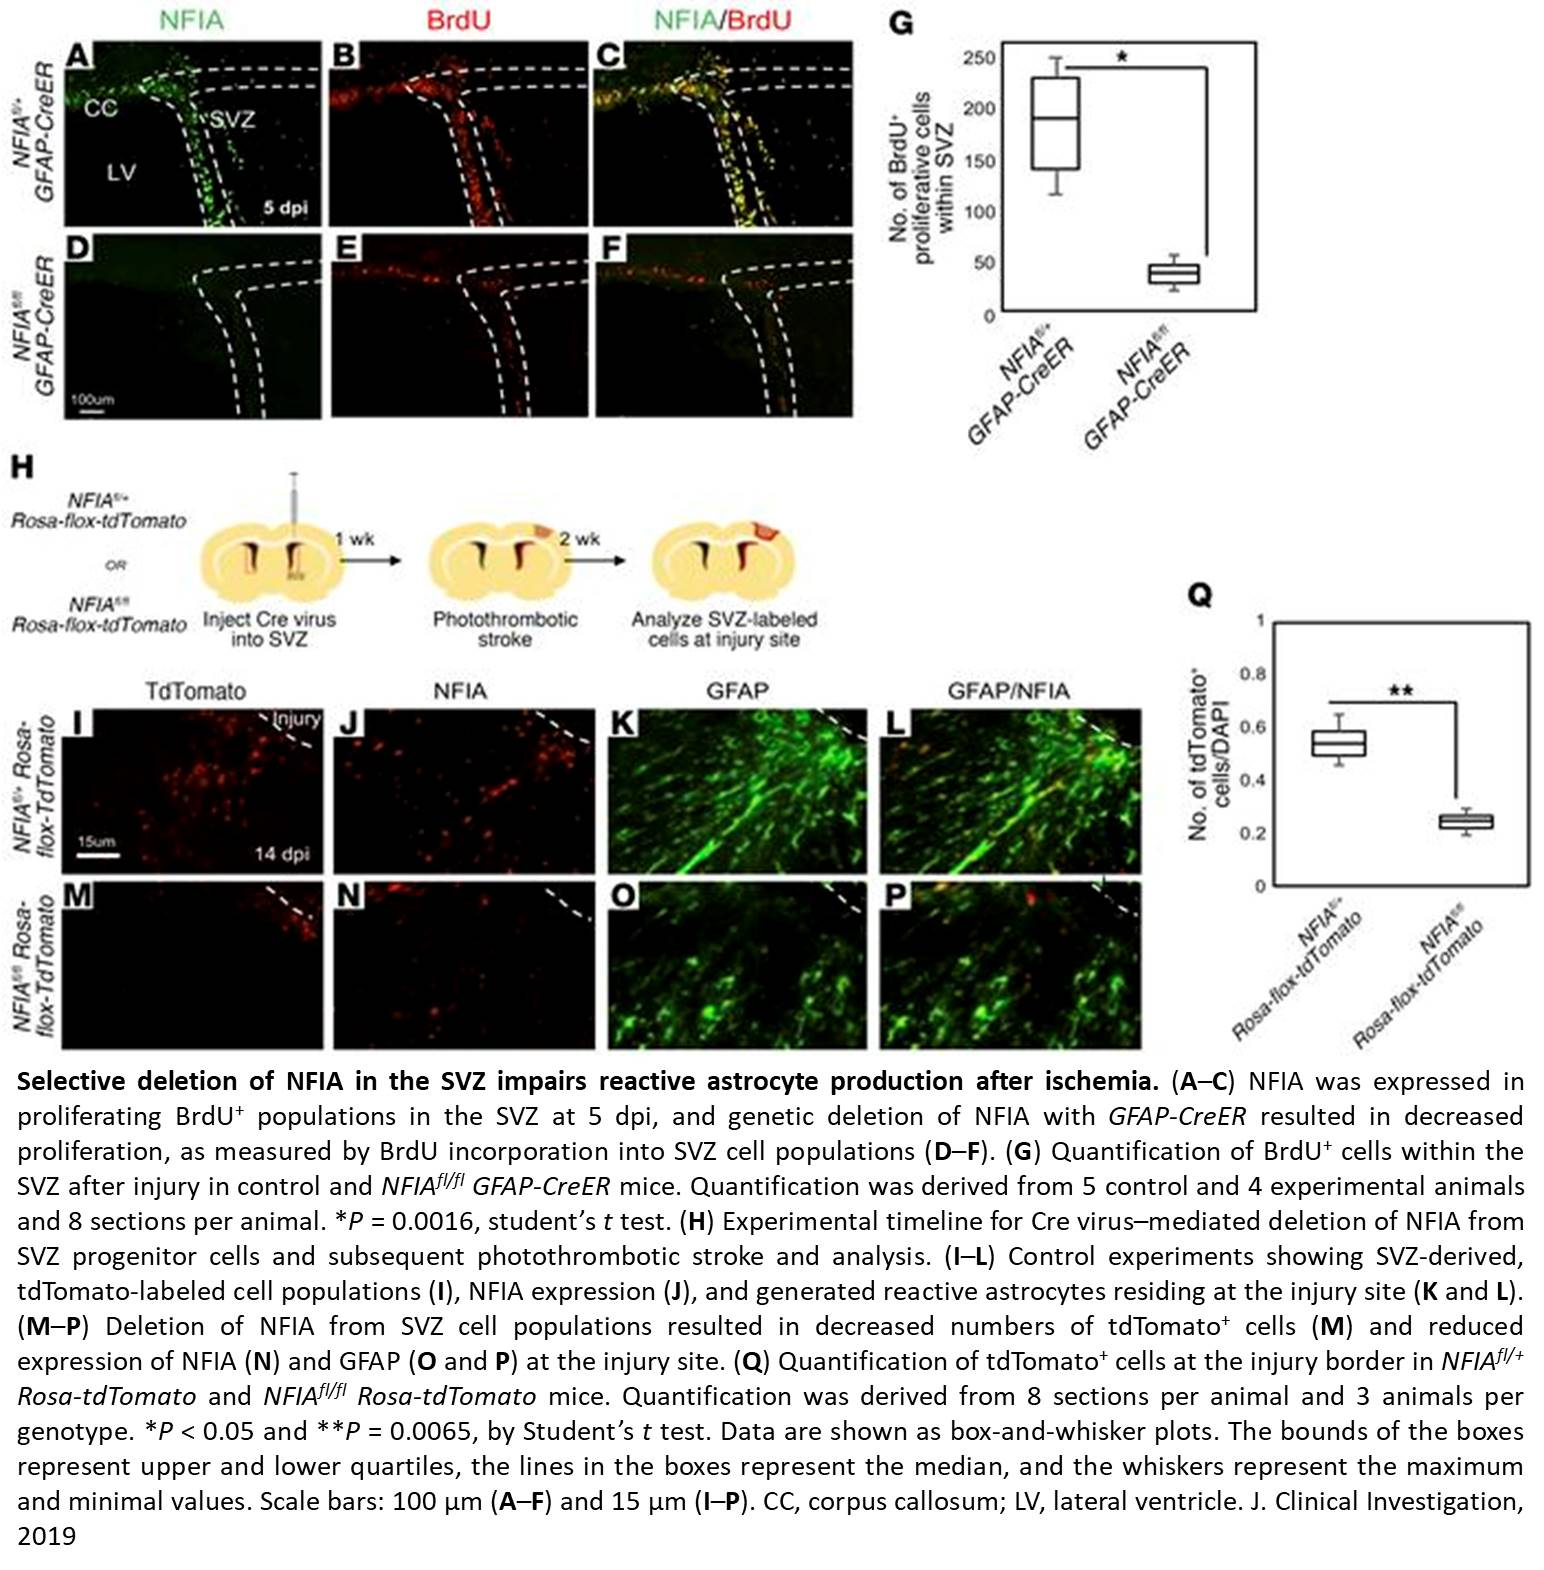 Nuclear factor I-A regulates diverse reactive astrocyte responses after CNS injury